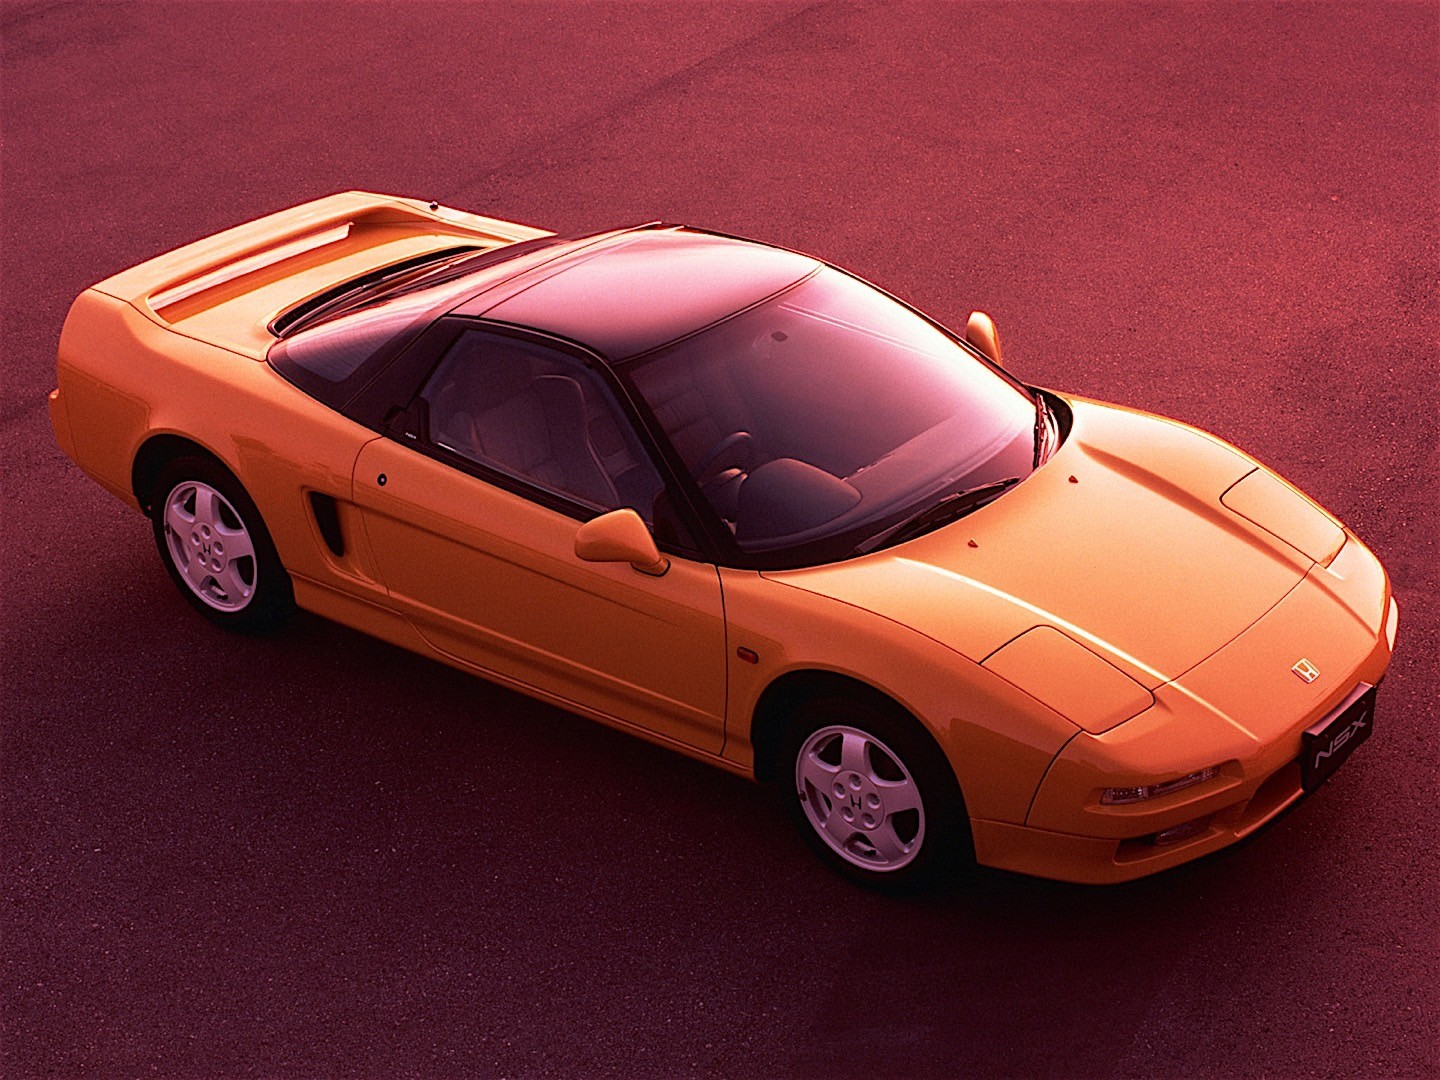 Xcs G likewise Maxresdefault additionally Honda Nsx also How To Replace An Abs Control Module Every Vehicle Will Involve A Different Process For Removing in addition C Bf A. on 1997 honda civic brake light